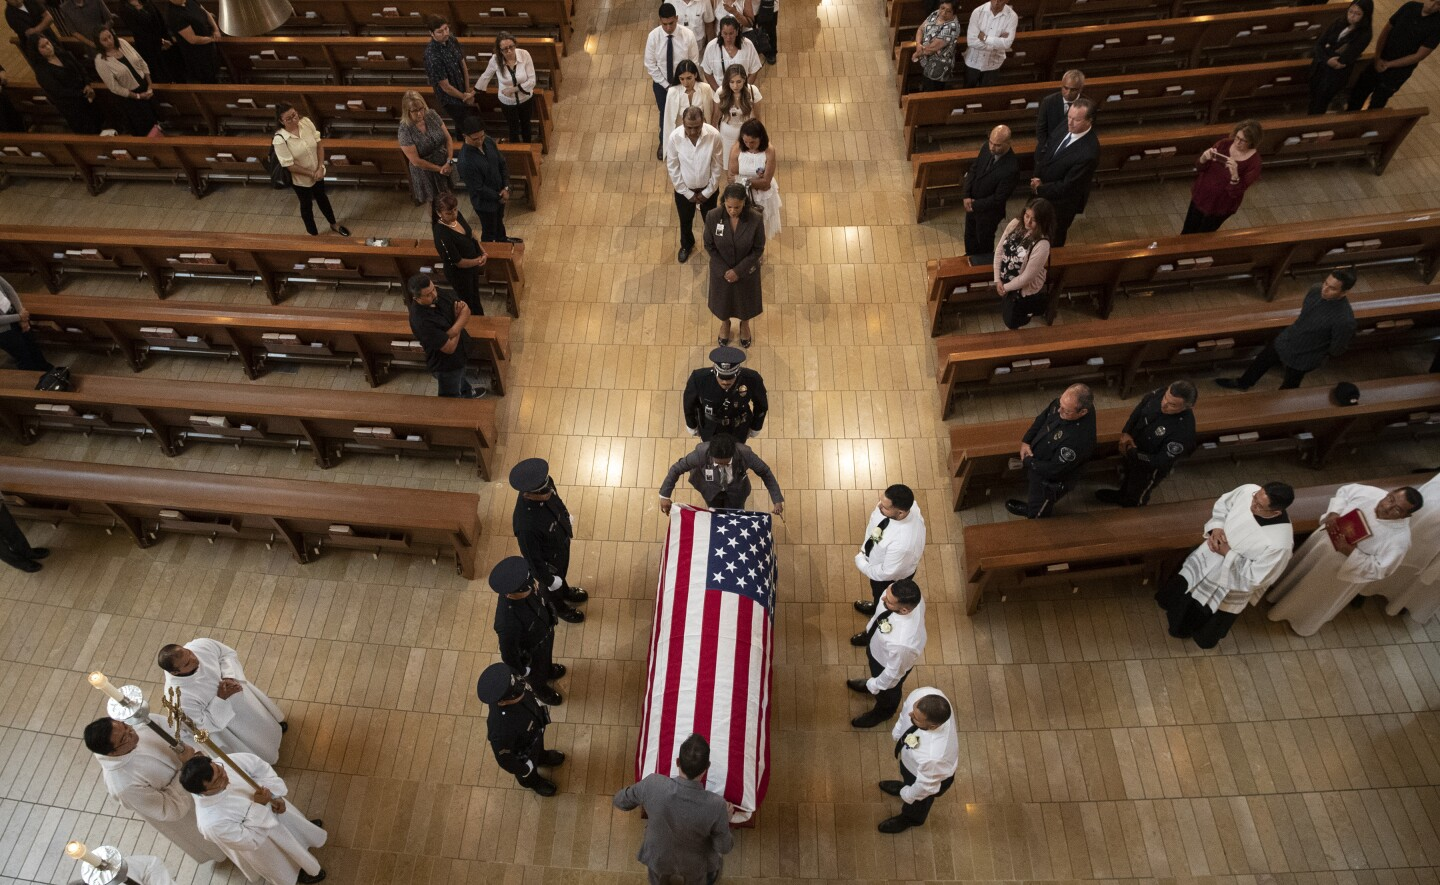 LOS ANGELES, CALIF. -- MONDAY, AUGUST 12, 2019: Pallbearers wait as an American flag is place on casket during funeral mass of slain LAPD officer Juan Diaz at the Cathedral of Our Lady of the Angels in Los Angeles, Calif., on Aug. 12, 2019. (Brian van der Brug / Los Angeles Times)